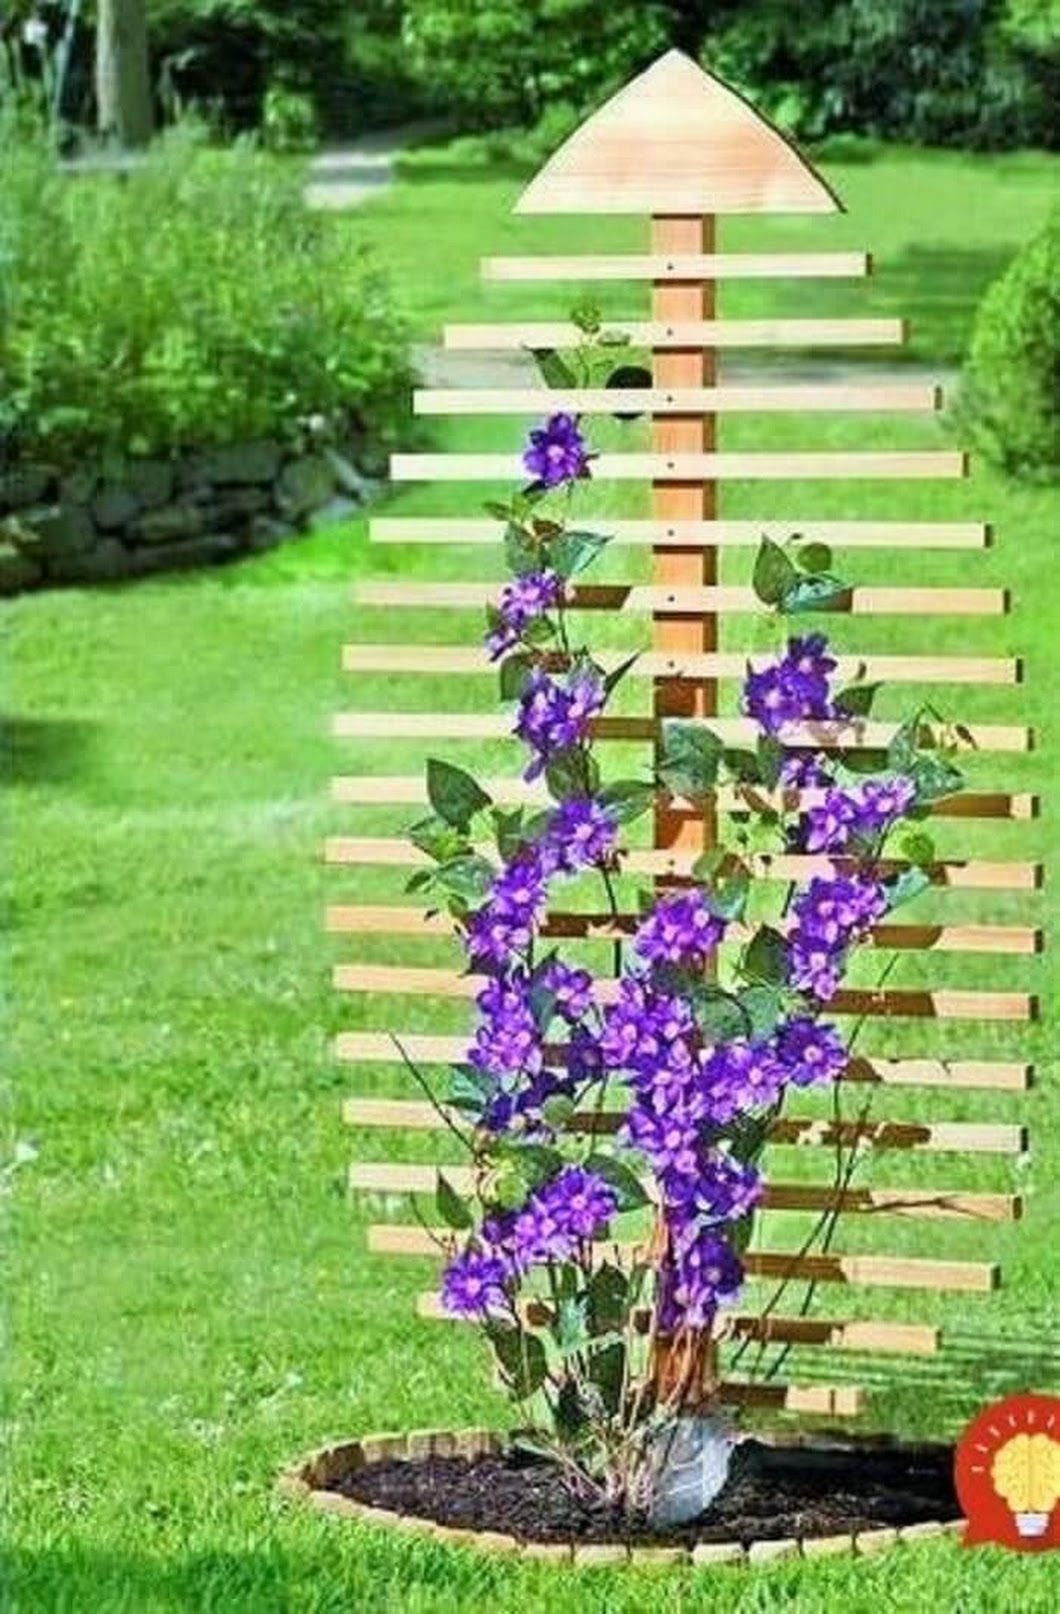 Photo of 15 Fascinating Decoration Ideas For Your Home Garden Gardens pertaining to Home Garden Decora…